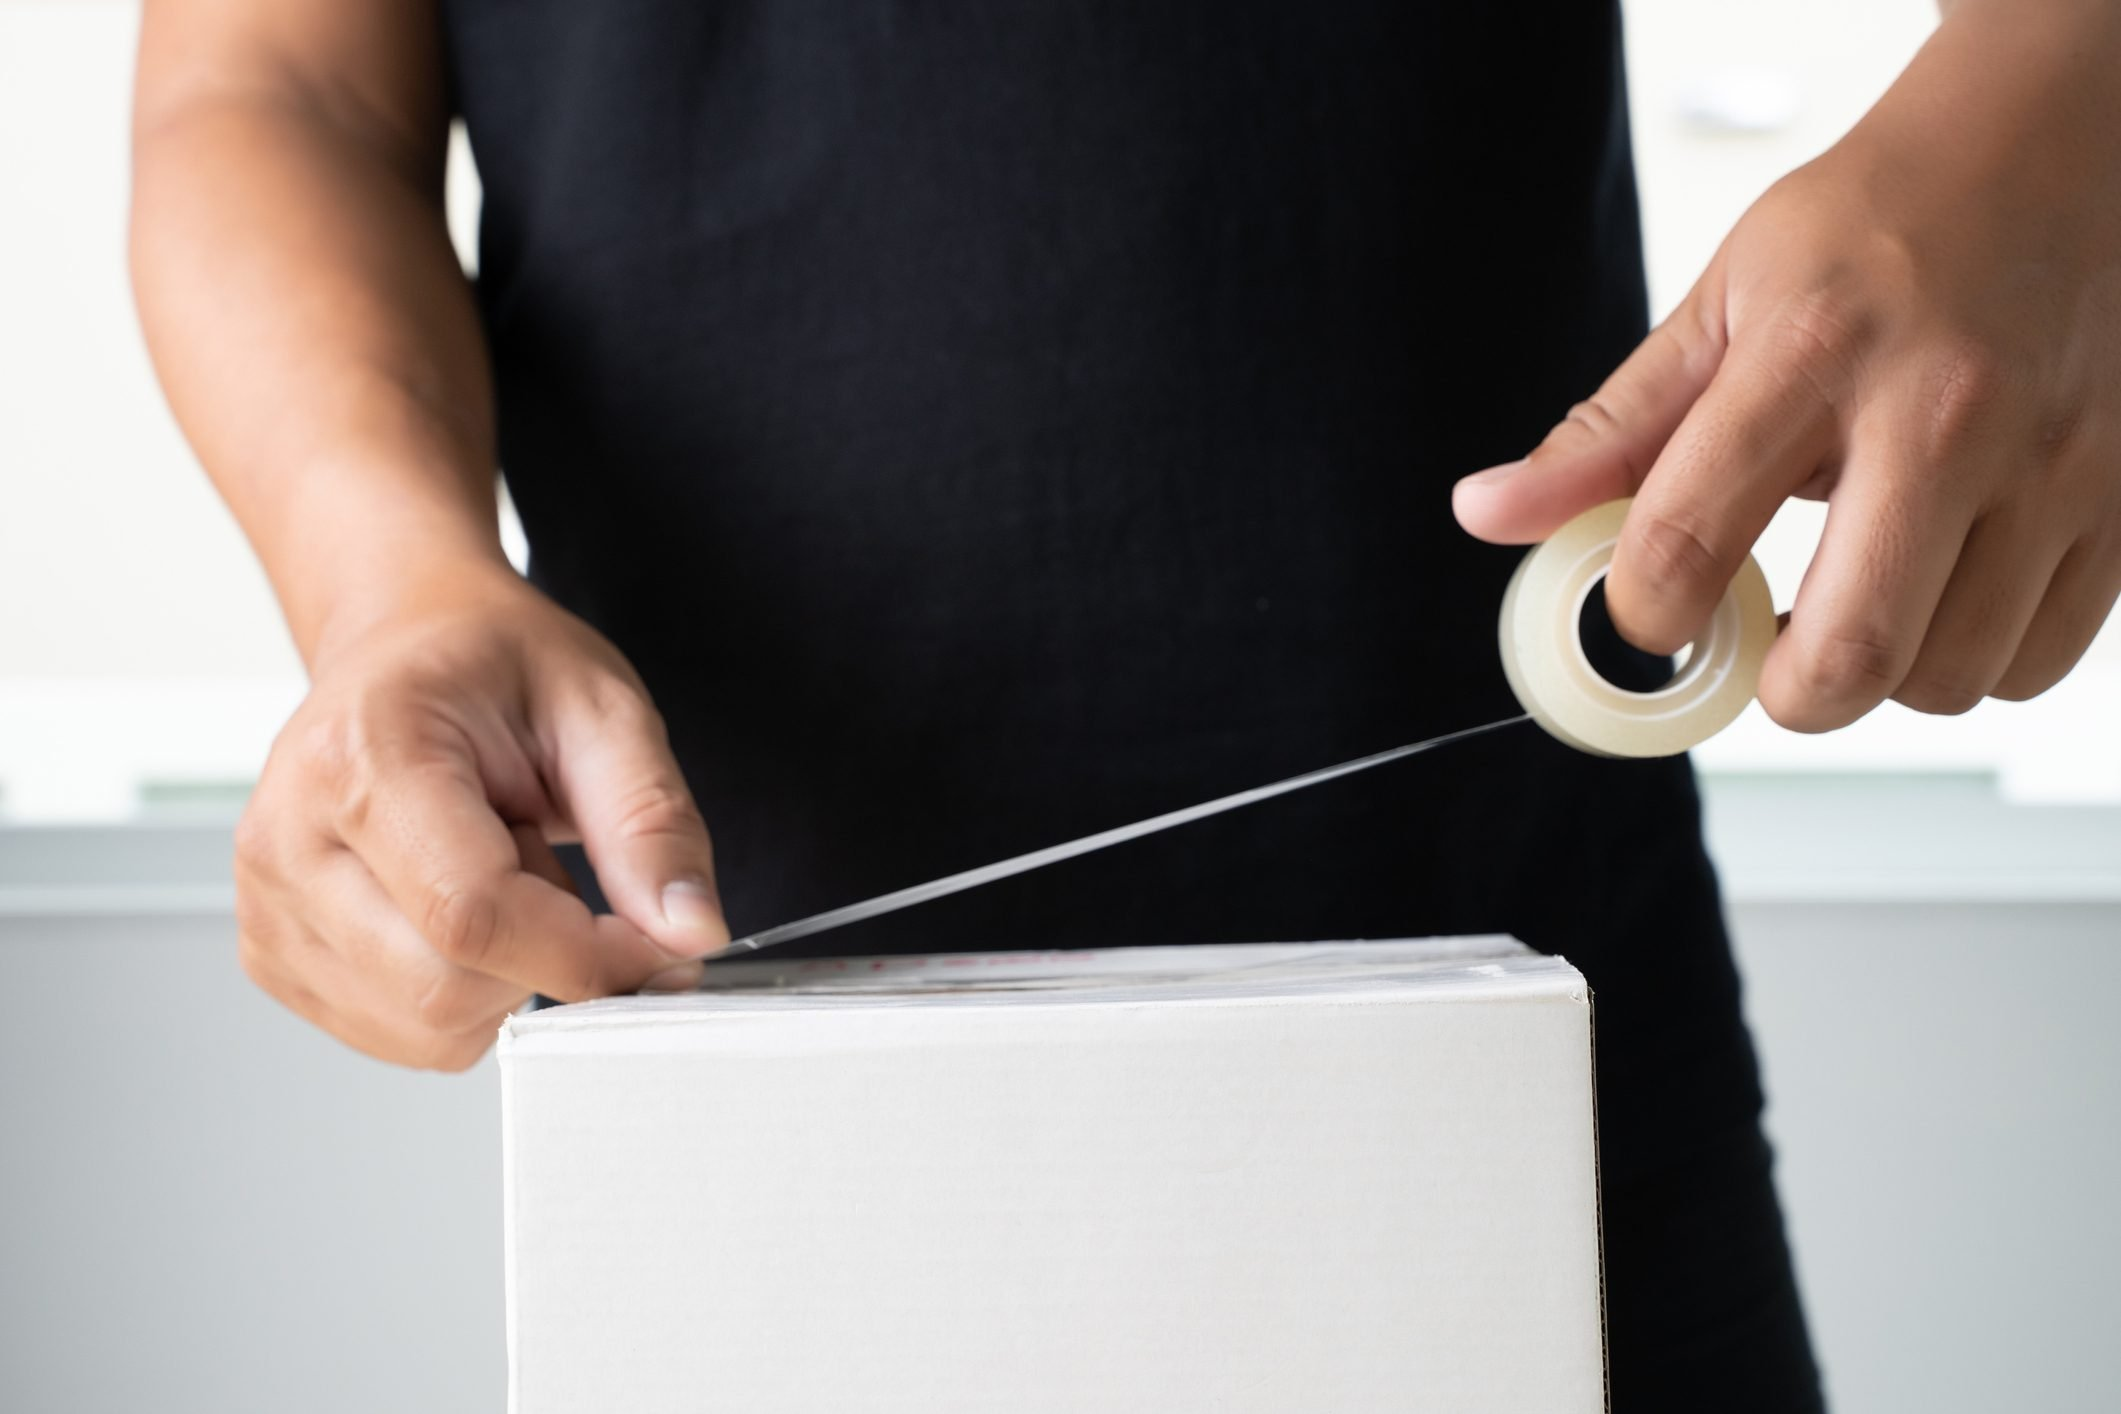 Midsection Of Man Applying Adhesive Tape On White Box At Home